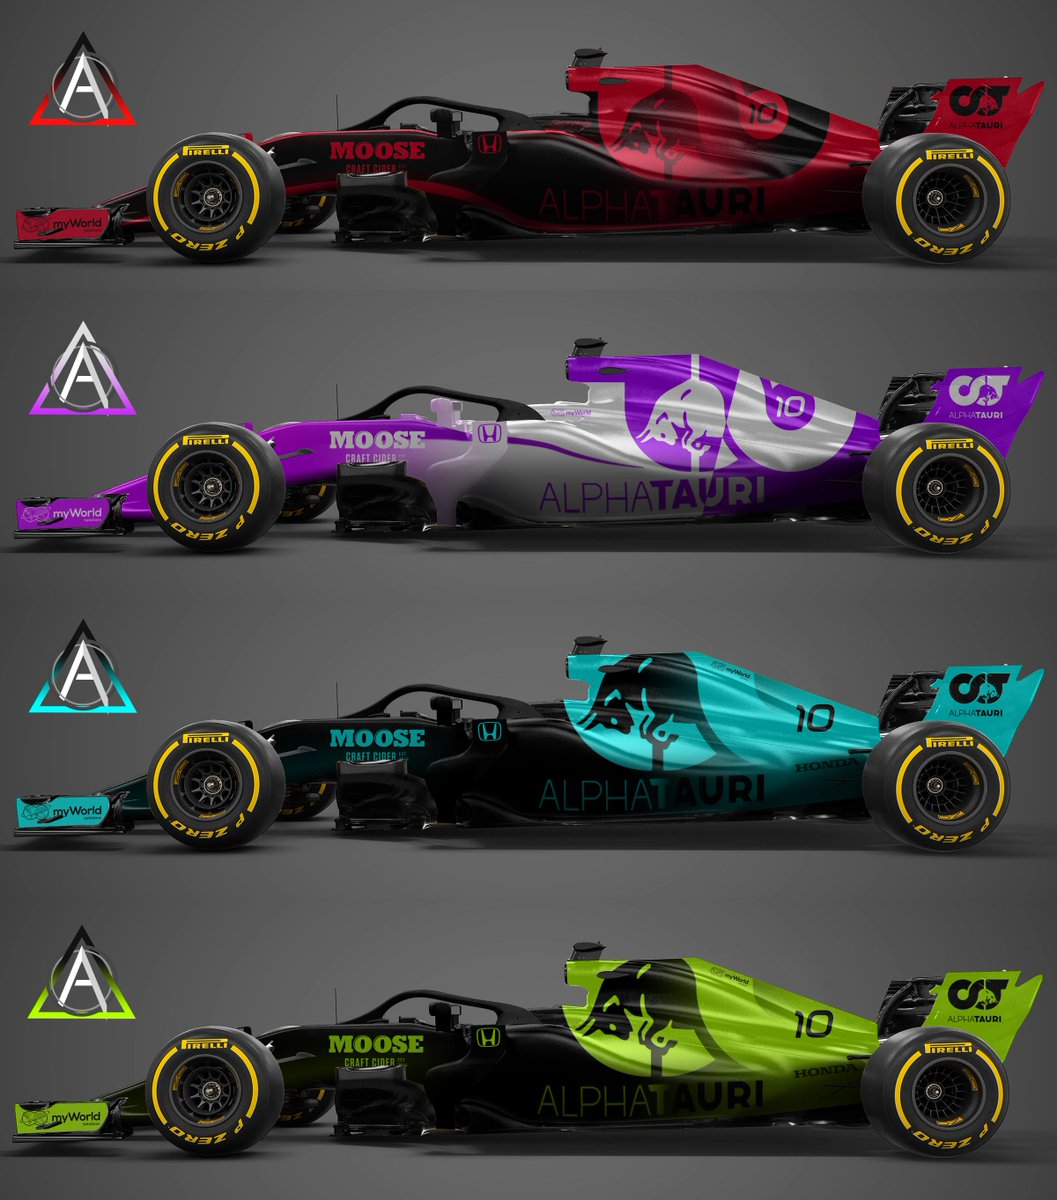 Adam Oates Design On Twitter Here S 4 Liveries For The Renamed Alpha Tauri For 2020 Vote For Your Favourite In The Replies And I Ll Release A 3d Assetto Corsa Livery For The